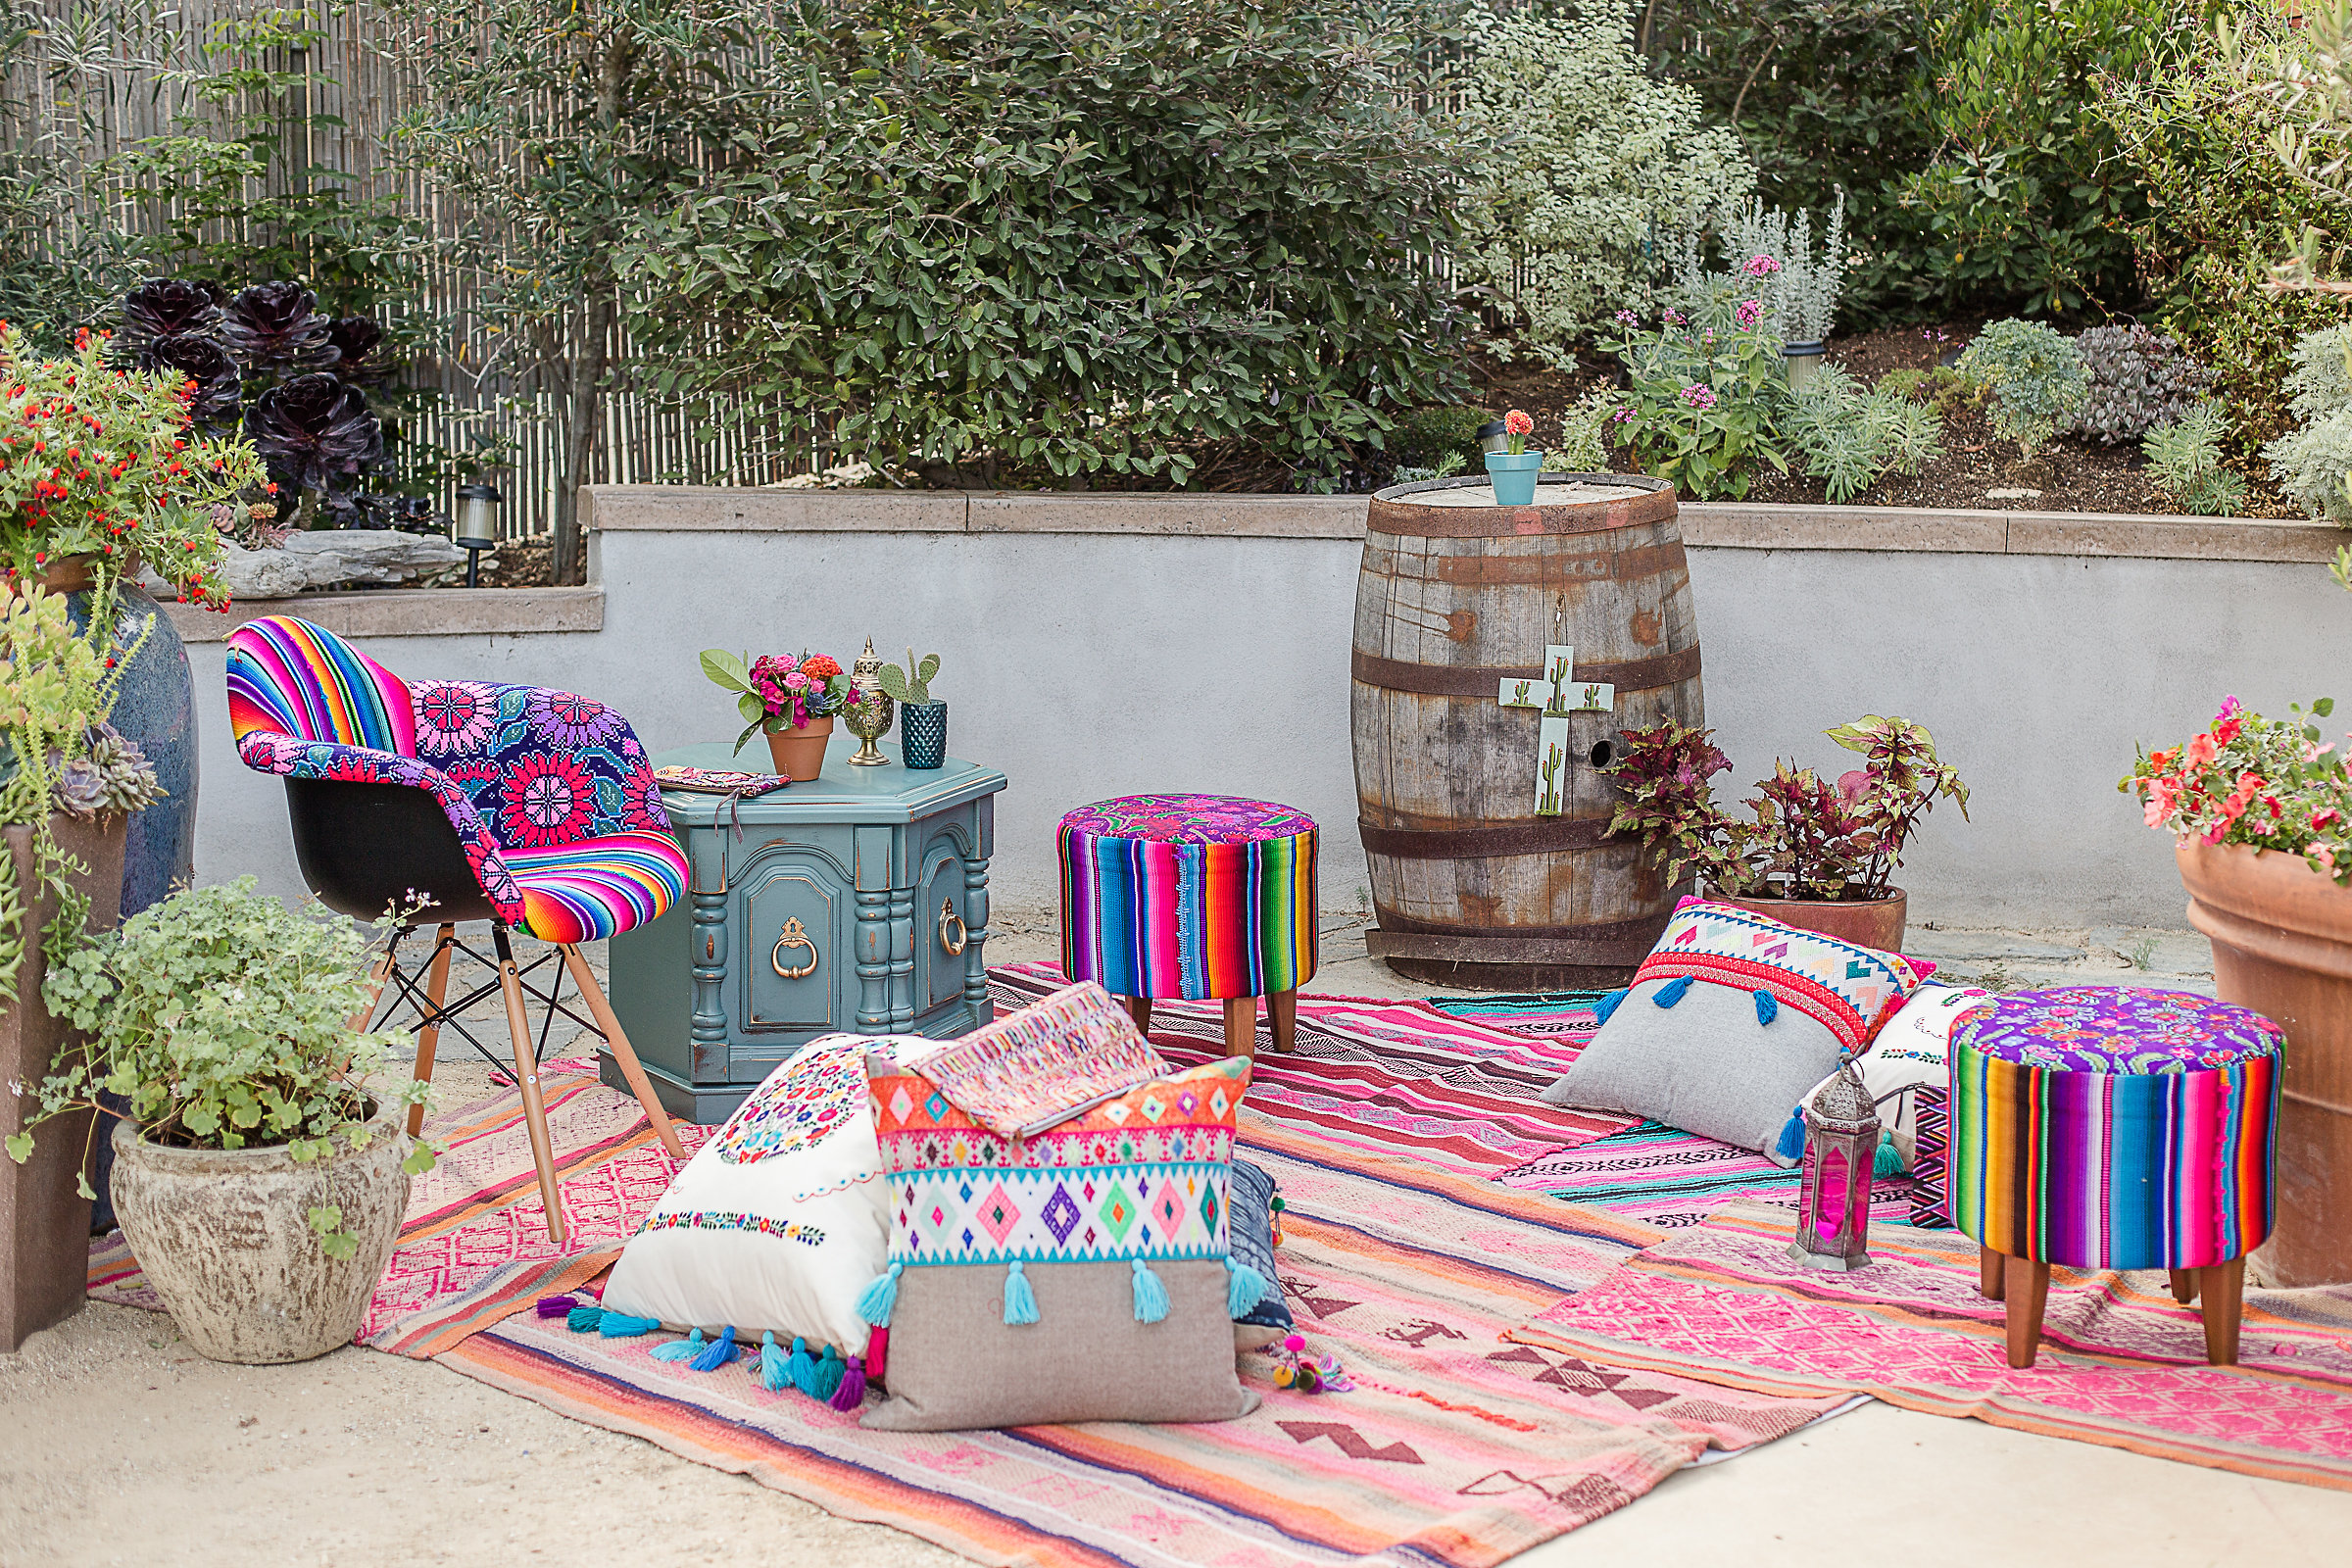 Mexican_Bridal_Shower_Barrels_&_Branches_2017-4.jpg